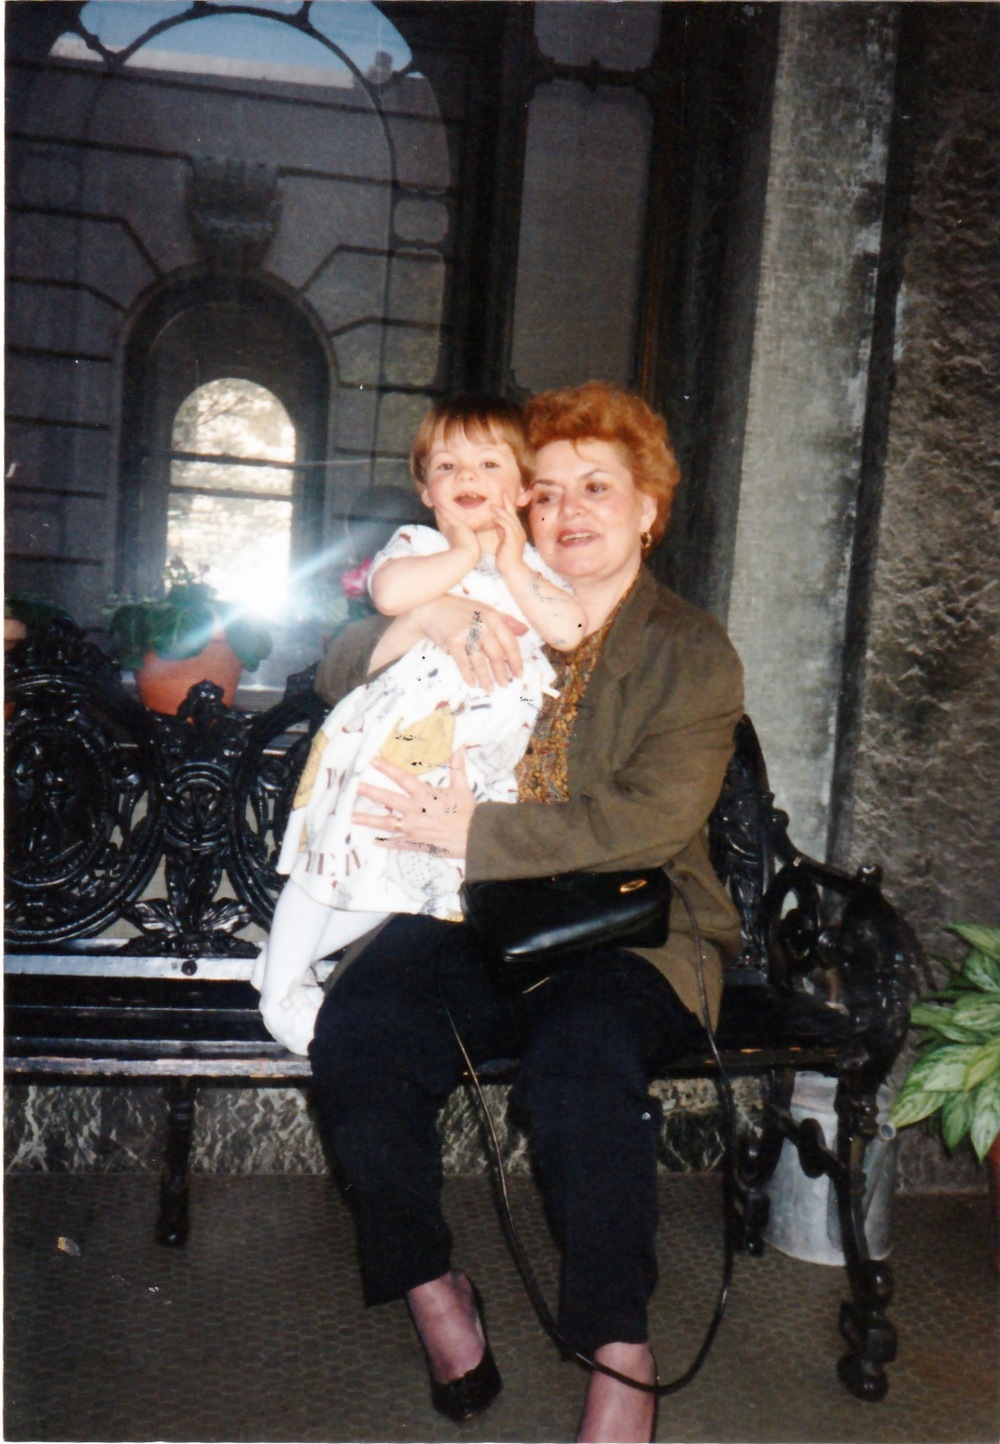 The second generation, in the United States. Celebrating my second birthday with my grandmother, Martha in July 1995 in New York City.